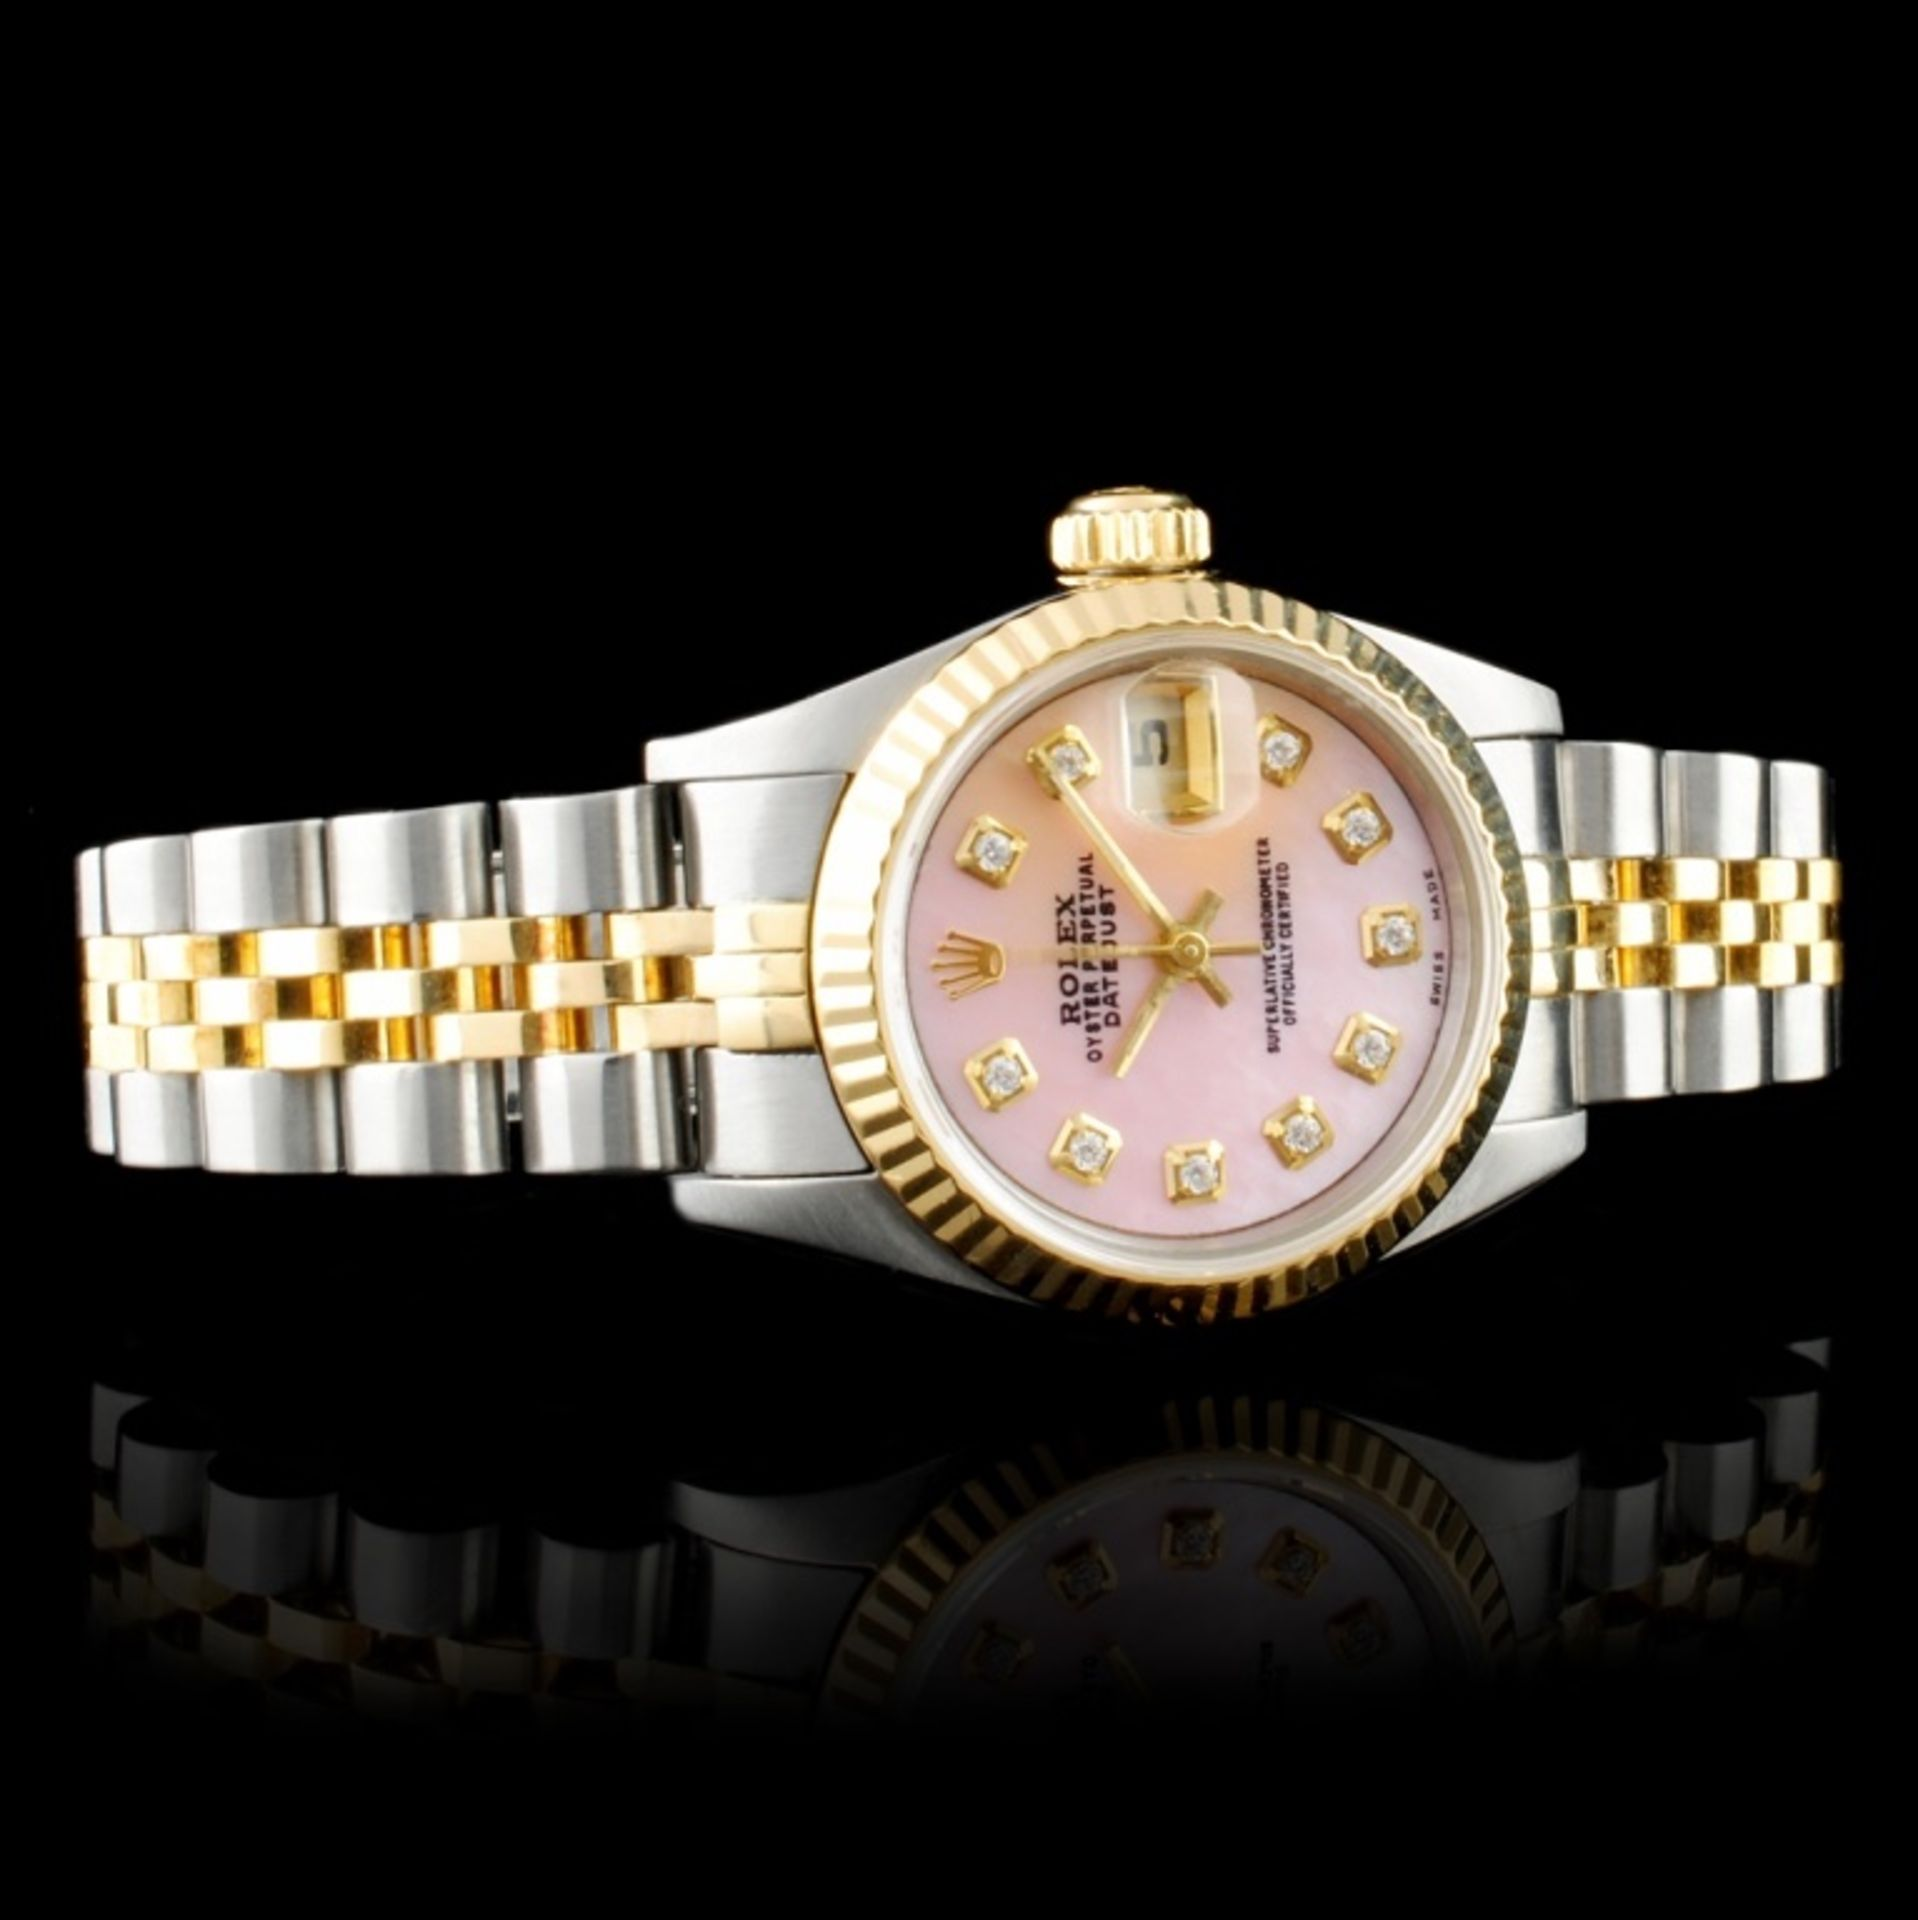 Rolex DateJust Diamond Ladies Wristwatch - Image 2 of 6